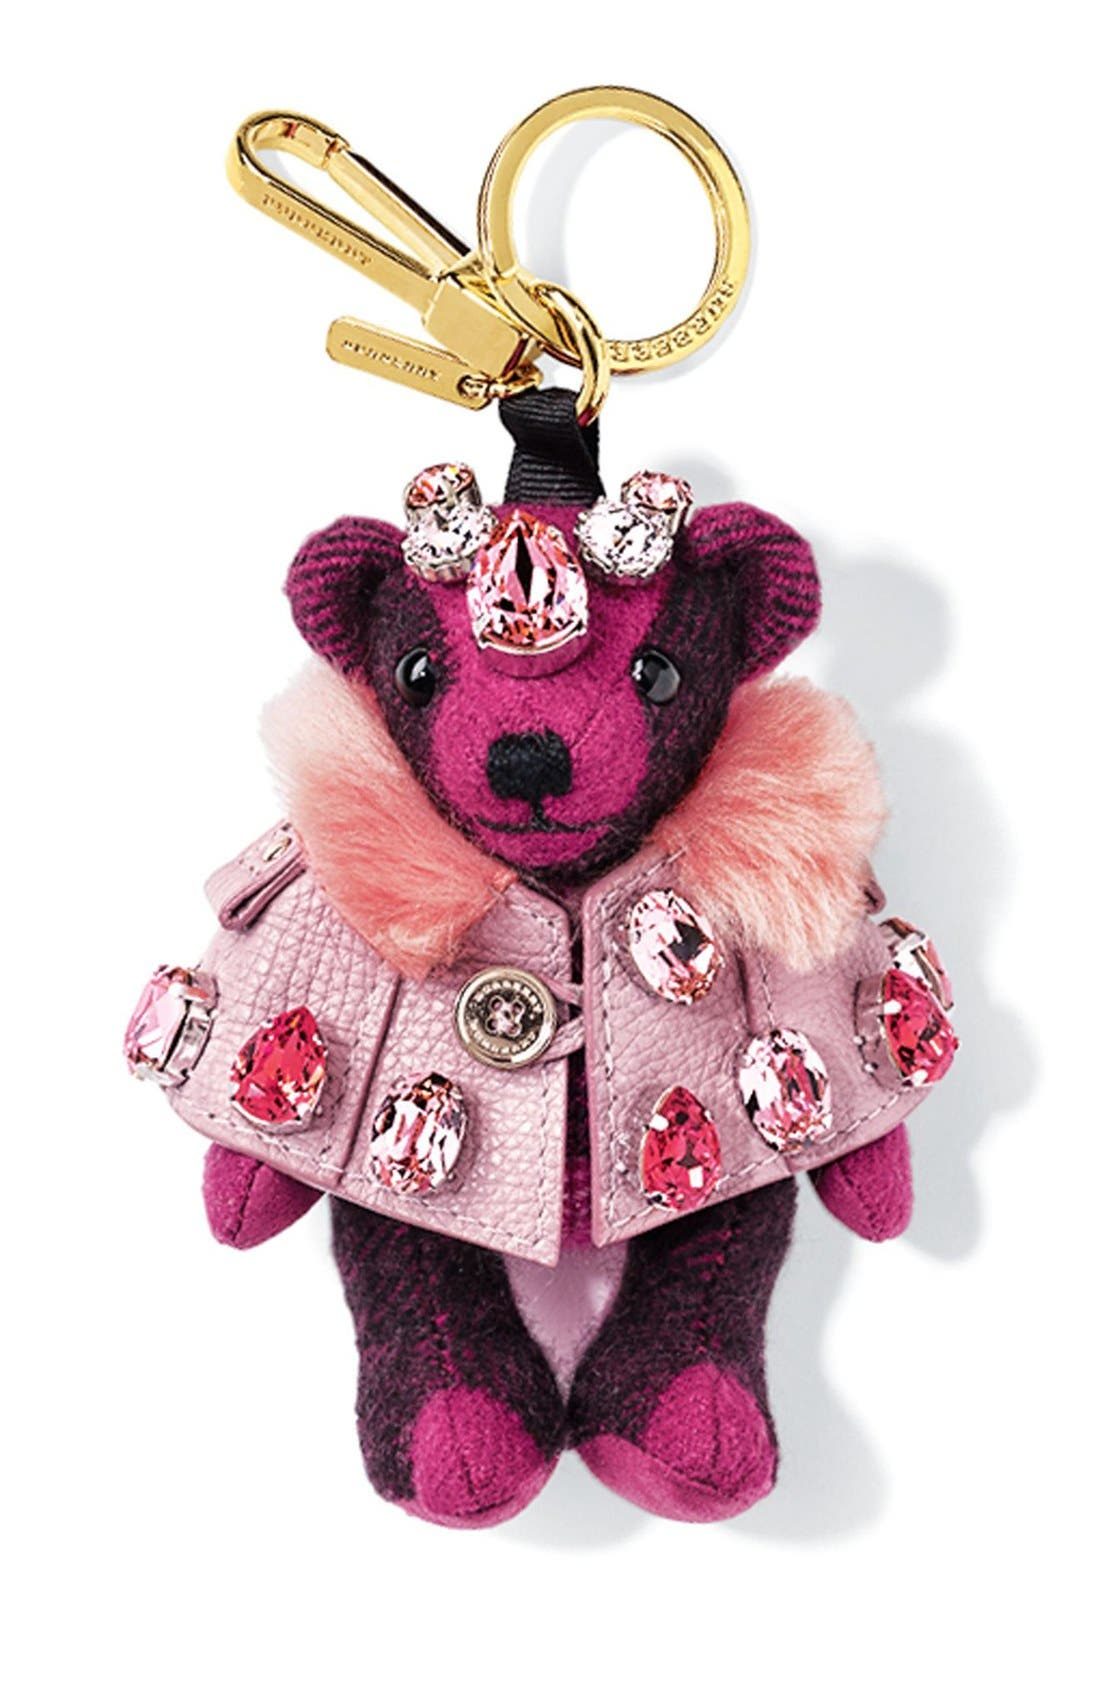 Main Image - Burberry Thomas Bear Bag Charm with Genuine Shearling Trim Cape & Crystals